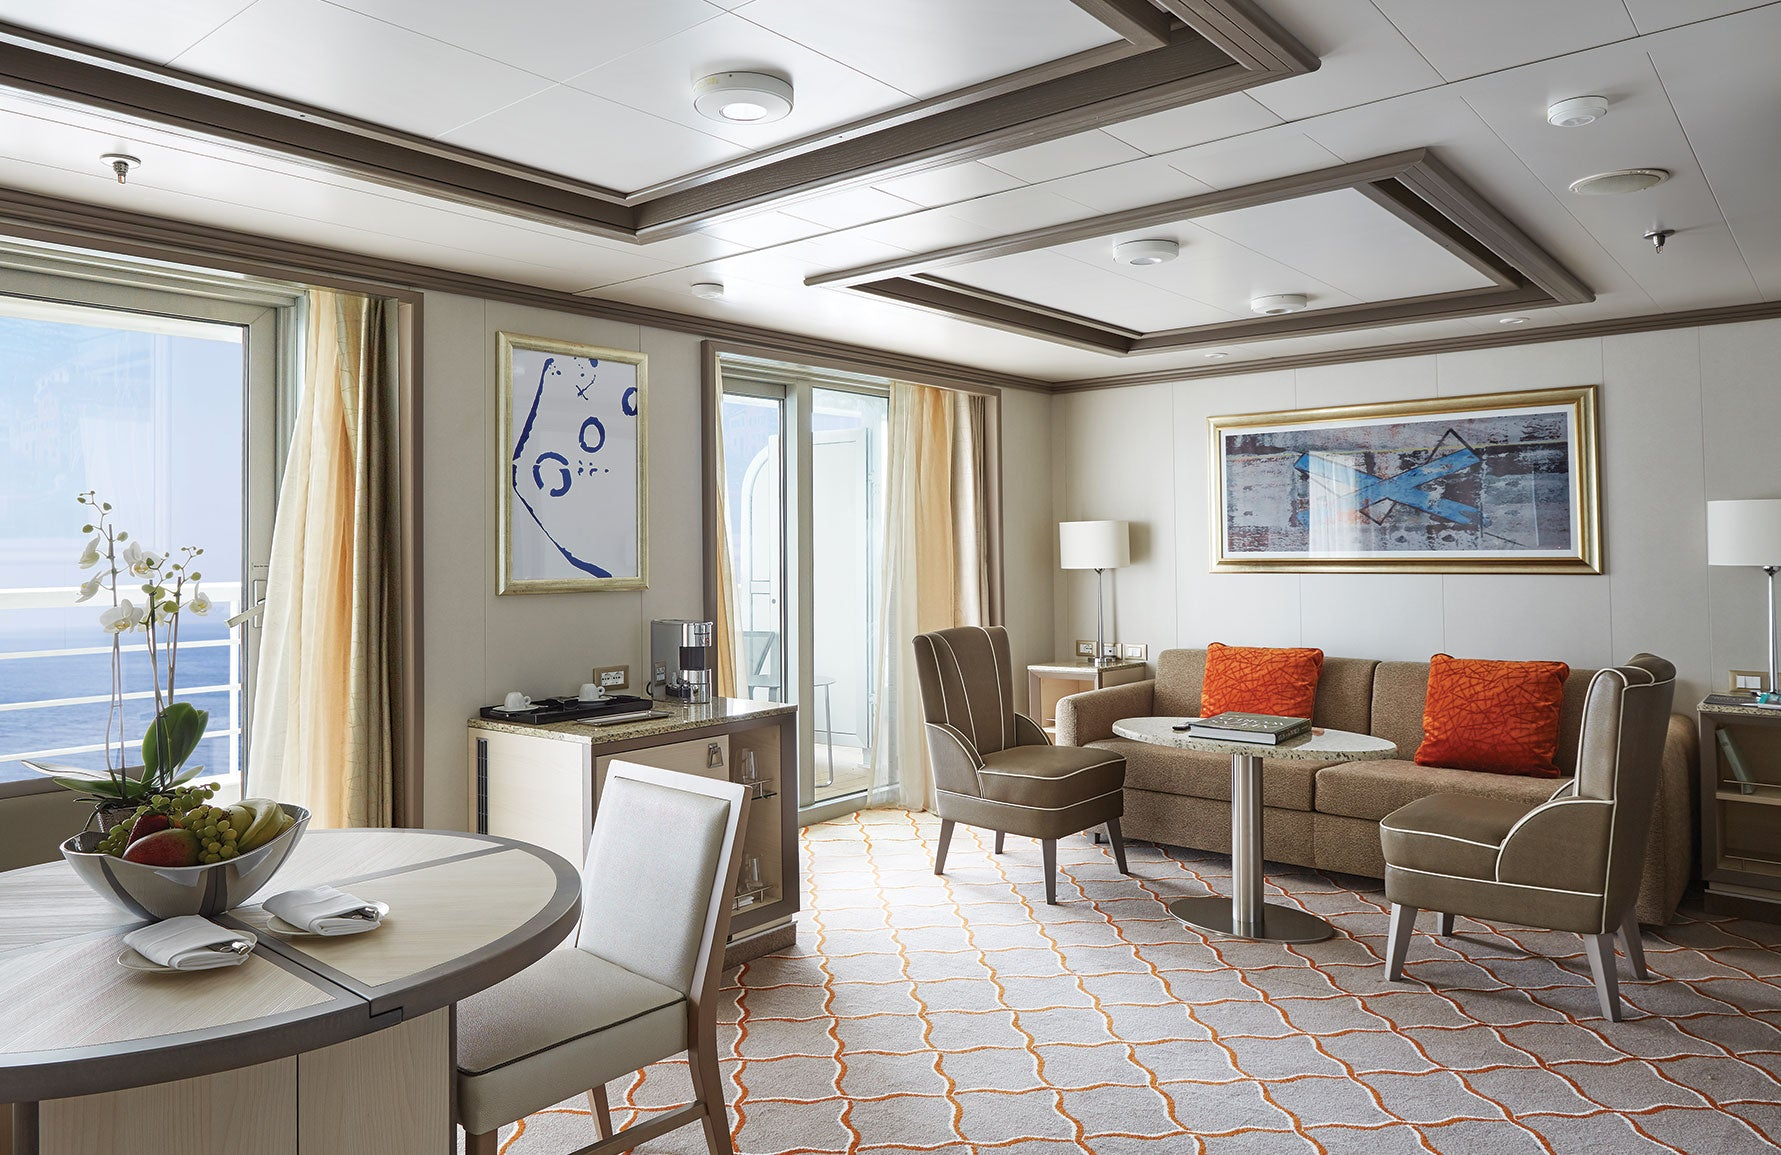 Most Luxurious Cruise Ships in the World _ Silver Muse _ LuxDeco Style Guide